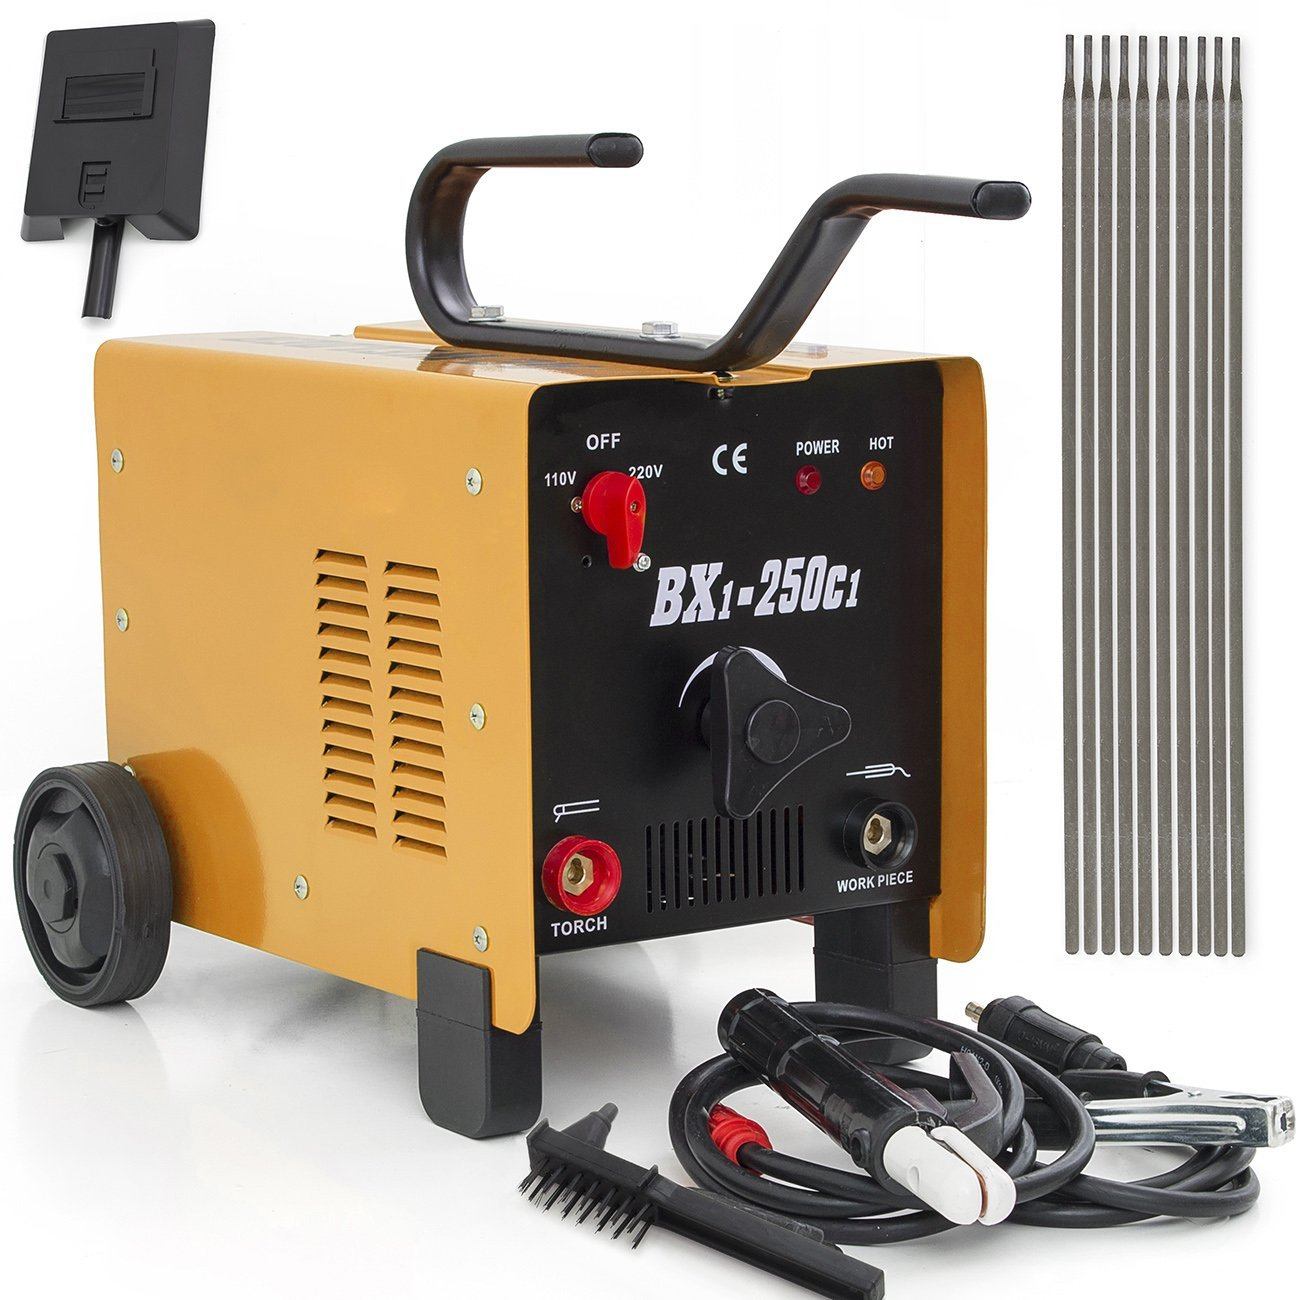 ARKSEN ARC Welder 250AMP Rated Input Voltage, 110V/220V, Dual Mode, Red